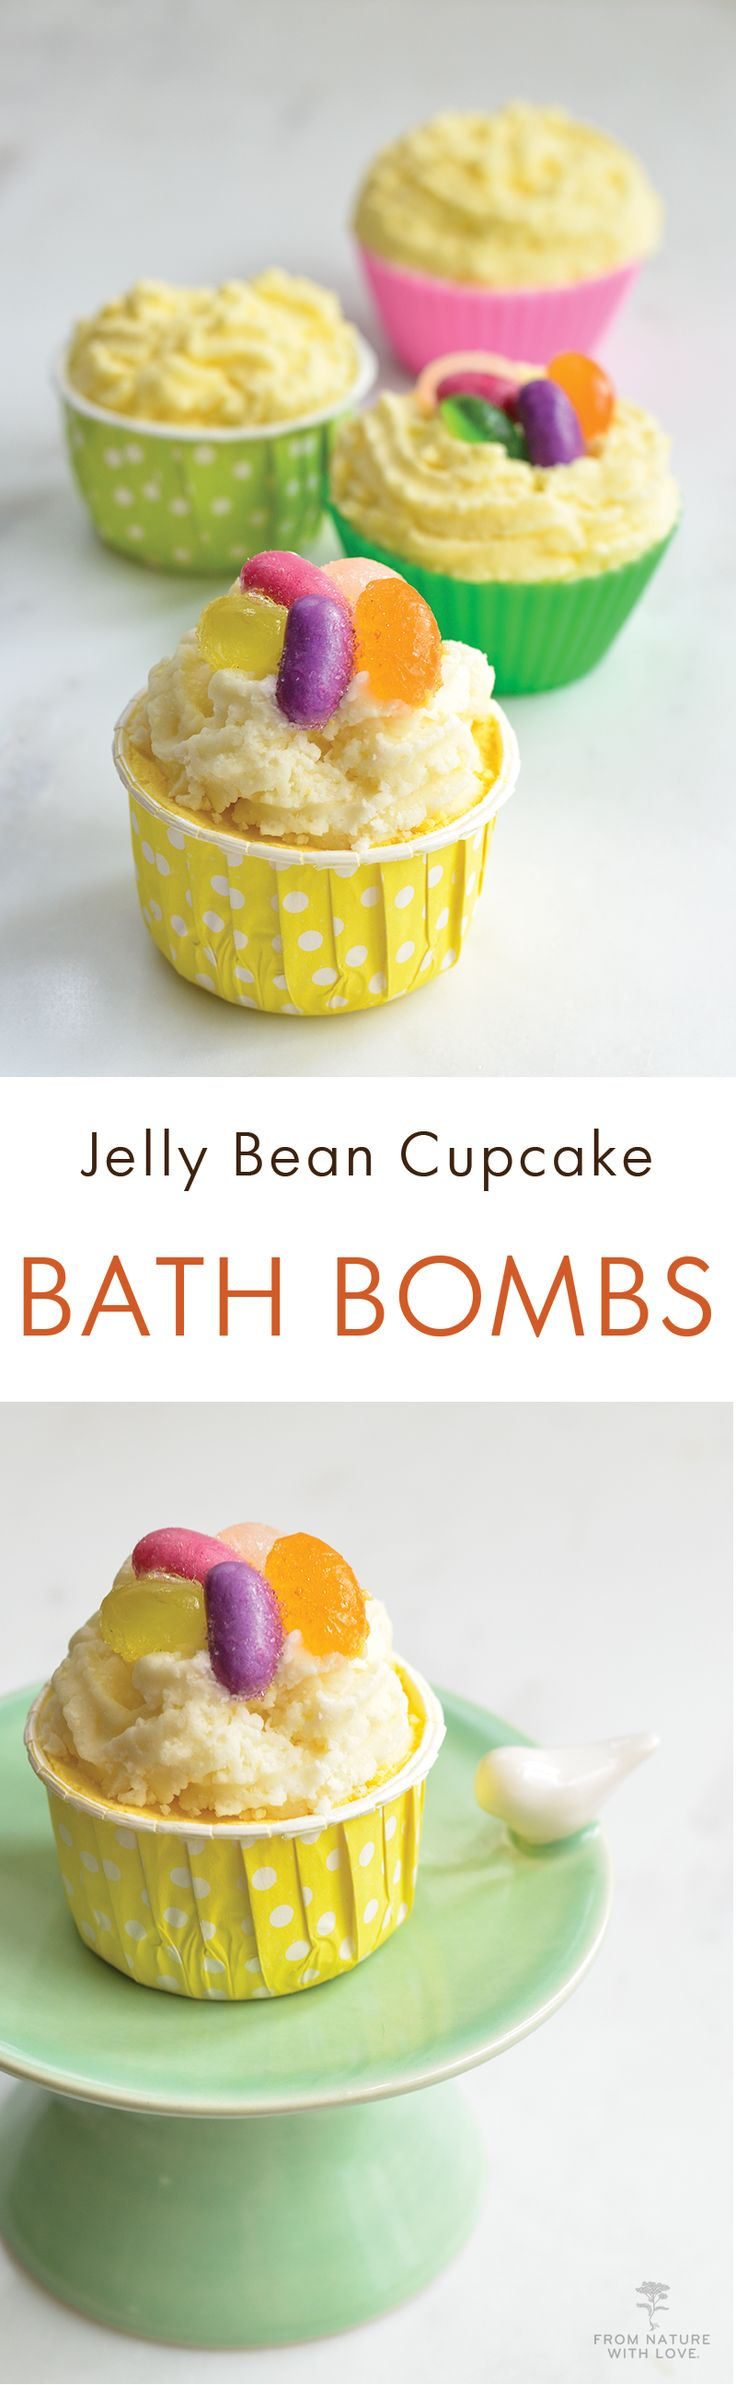 These adorable Jelly Bean Cupcake Bath Bombs include three components, a fizzy milk bath base, a layer of moisturizing Cocoa and Cupuacu Butters, and a colorful glycerin soap topping. We scented this recipe with our luscious Lemon Drop Plant-Based Fragran